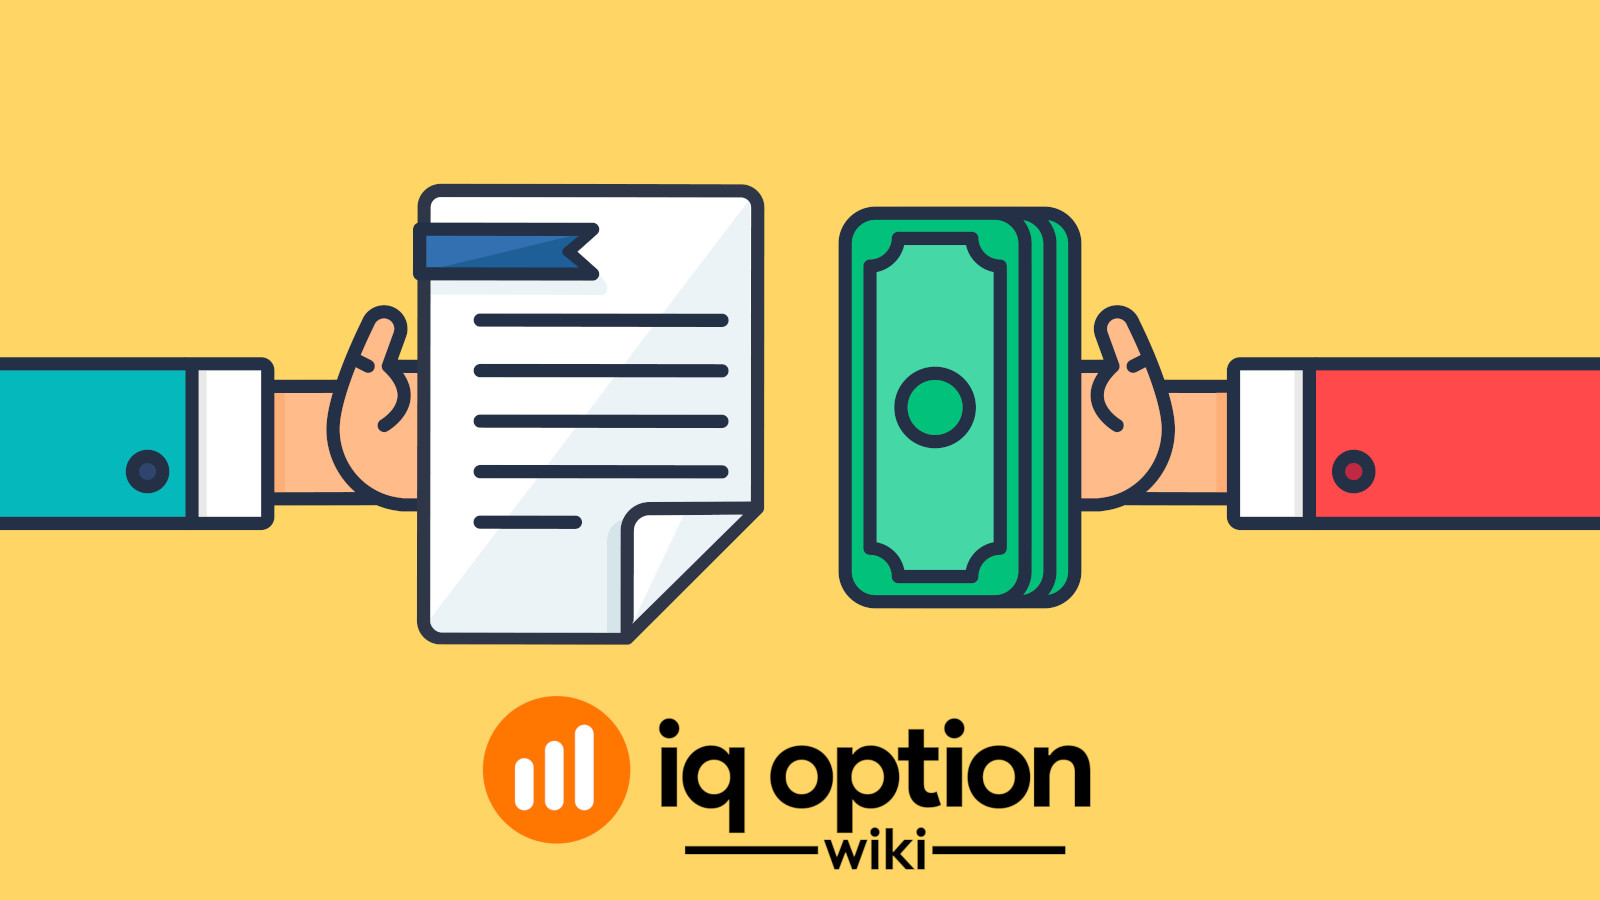 Métodos de pago iq option